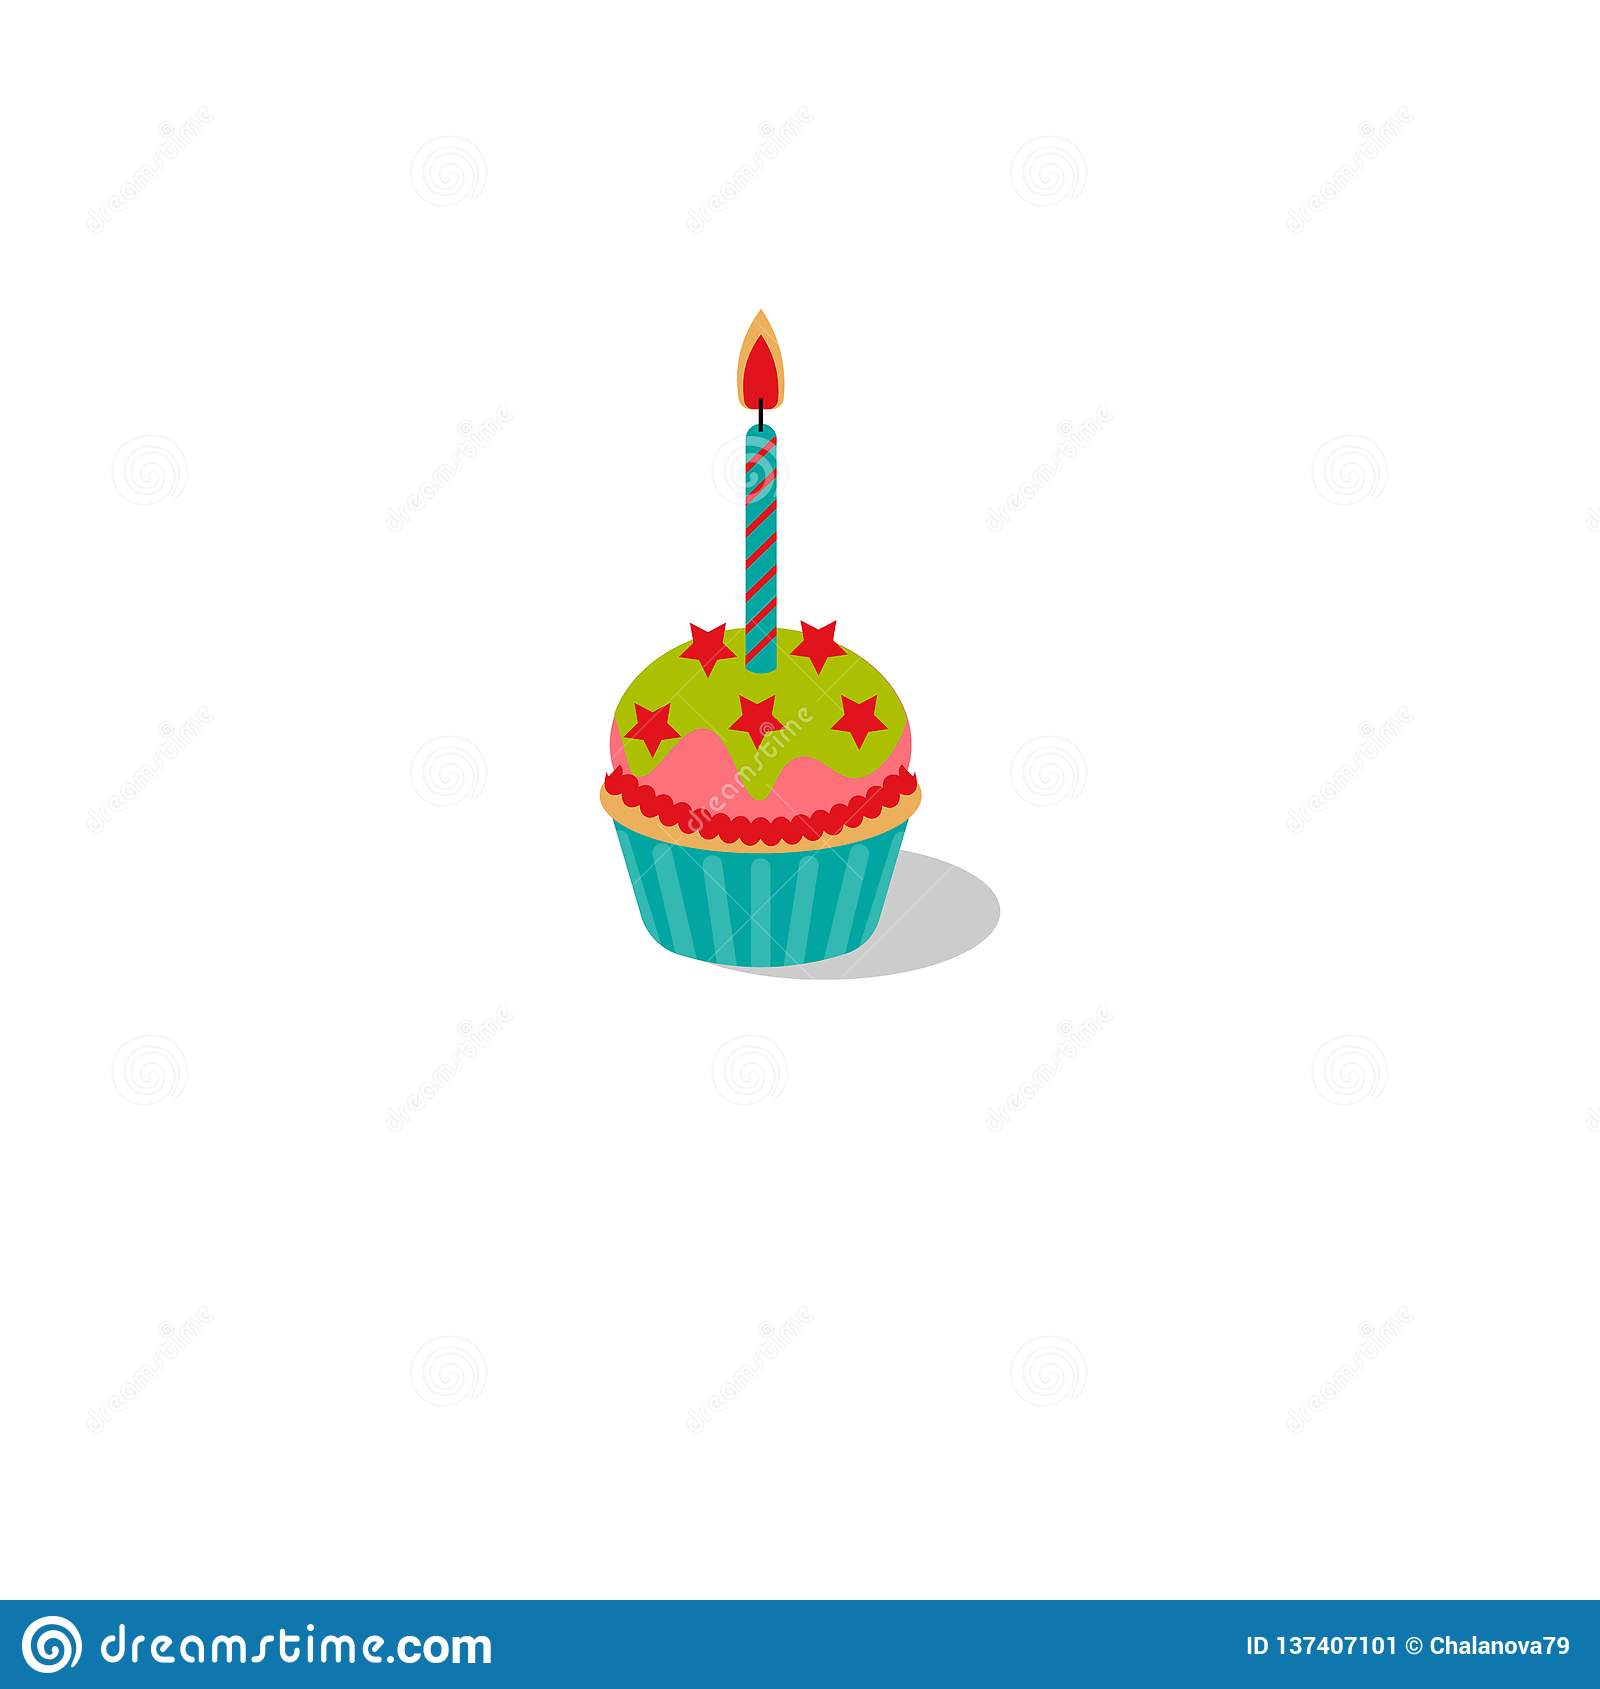 Vector illustration. Birthday cupcake with burning candle. Cupcake with icing and stars